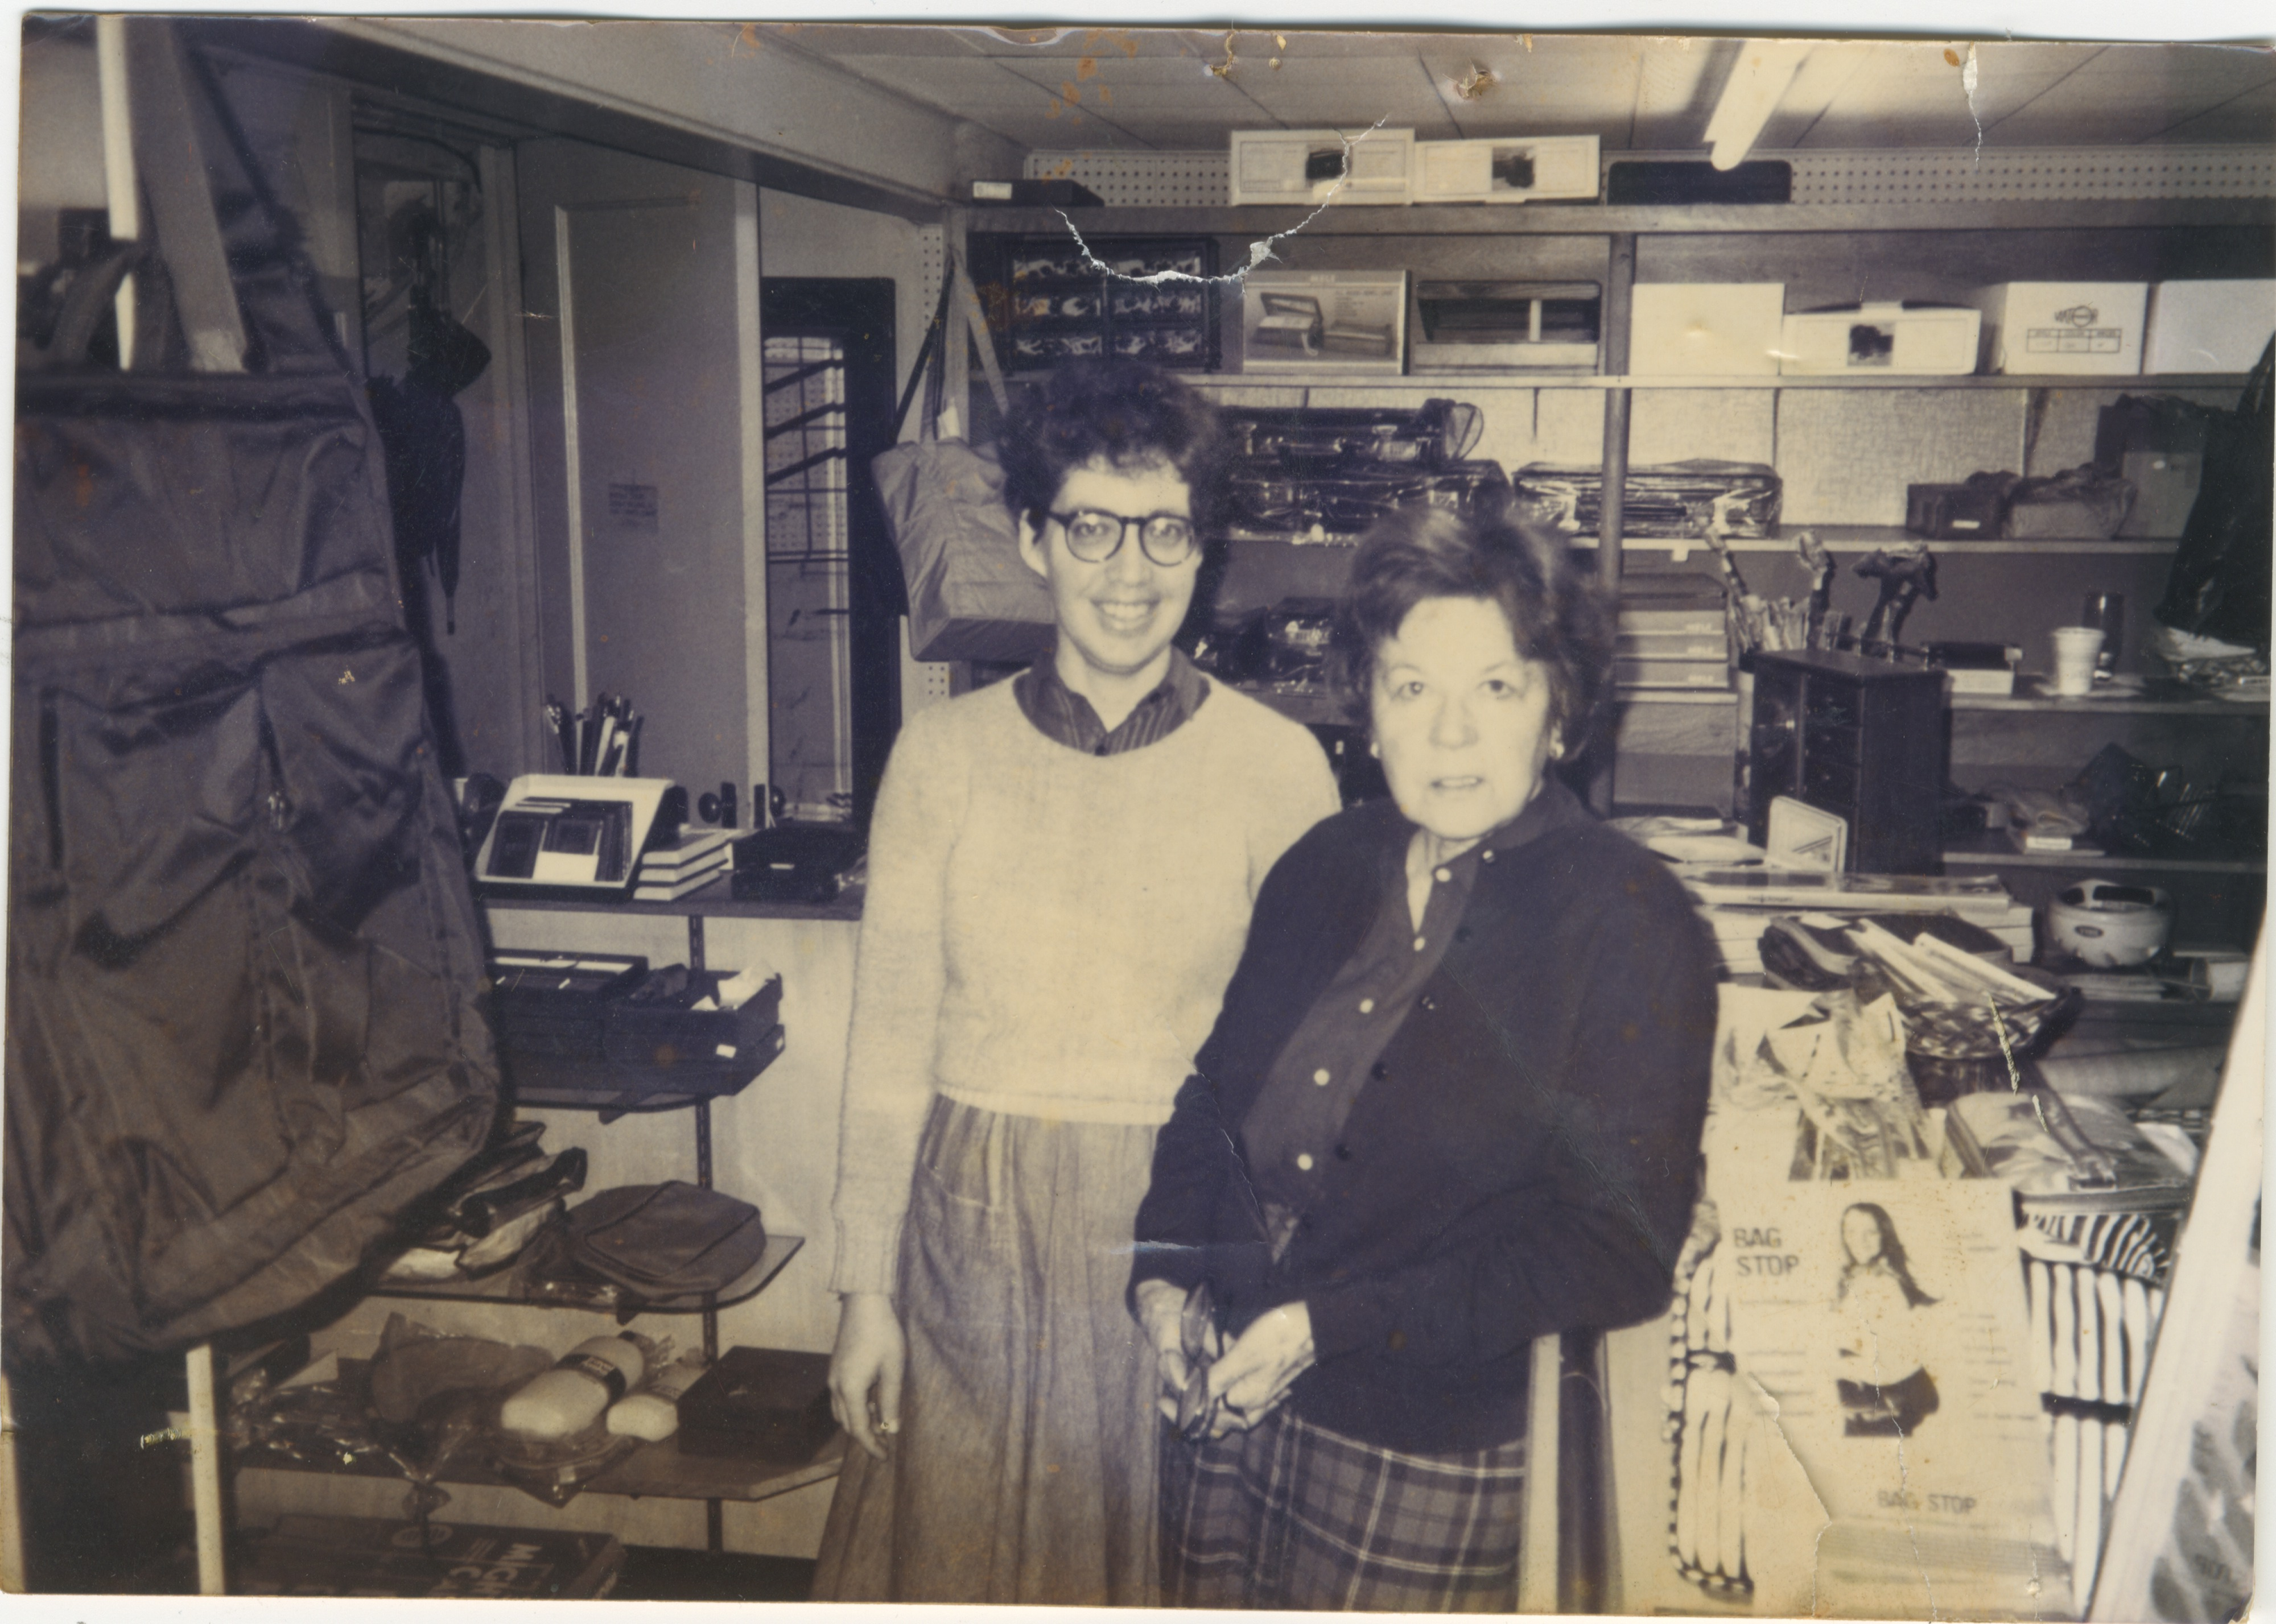 Maison Edwards Owner Augusta Edwards and Friend Janet Howard at Shop in Nickels Arcade, 1989 image